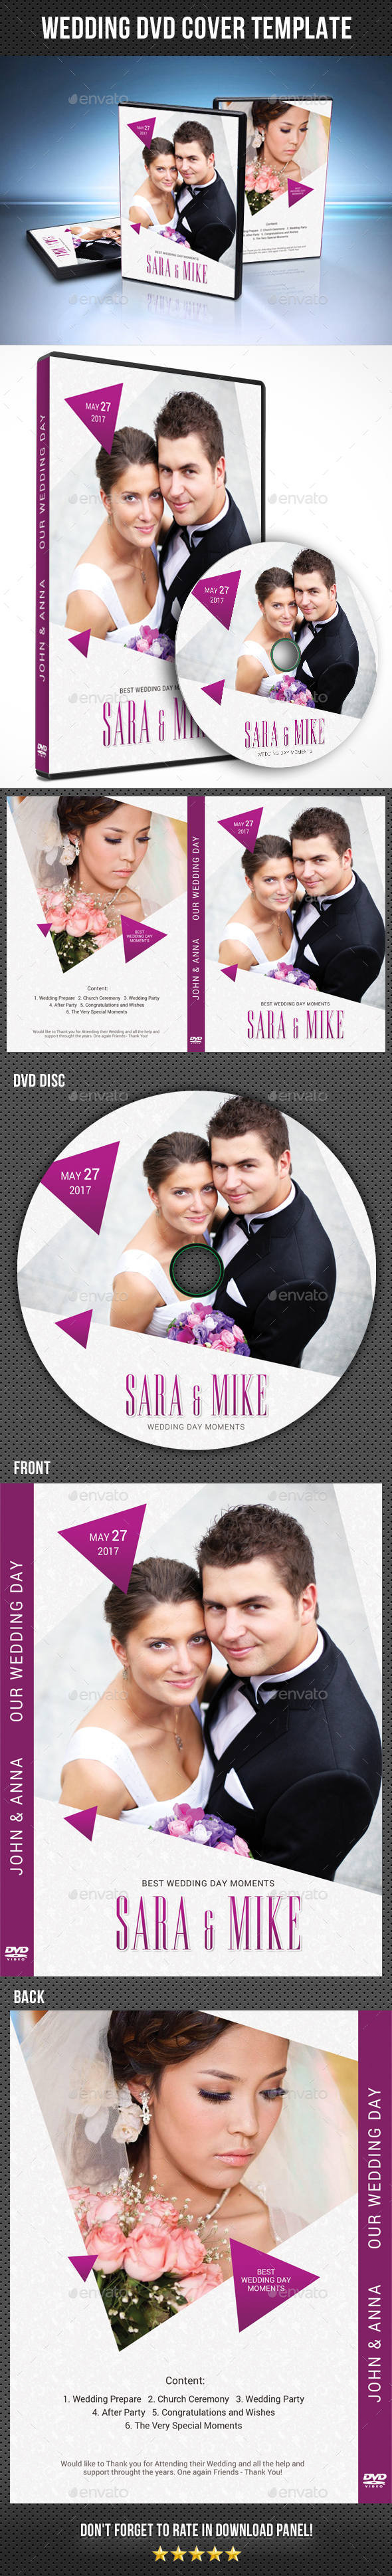 Wedding DVD Cover Template 22 - CD & DVD Artwork Print Templates